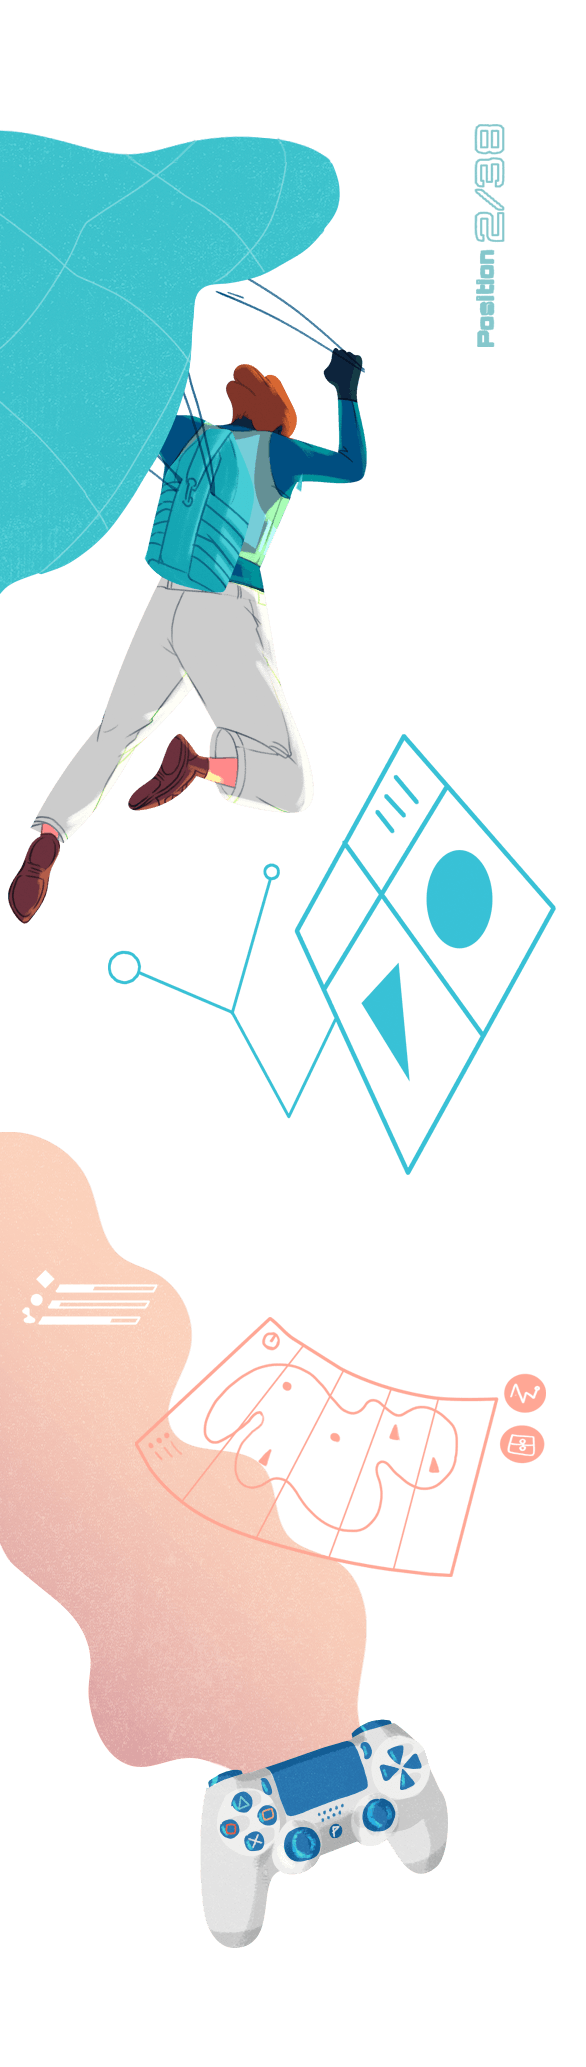 drawing of a parachuter above a video game controller in a post-cubist world